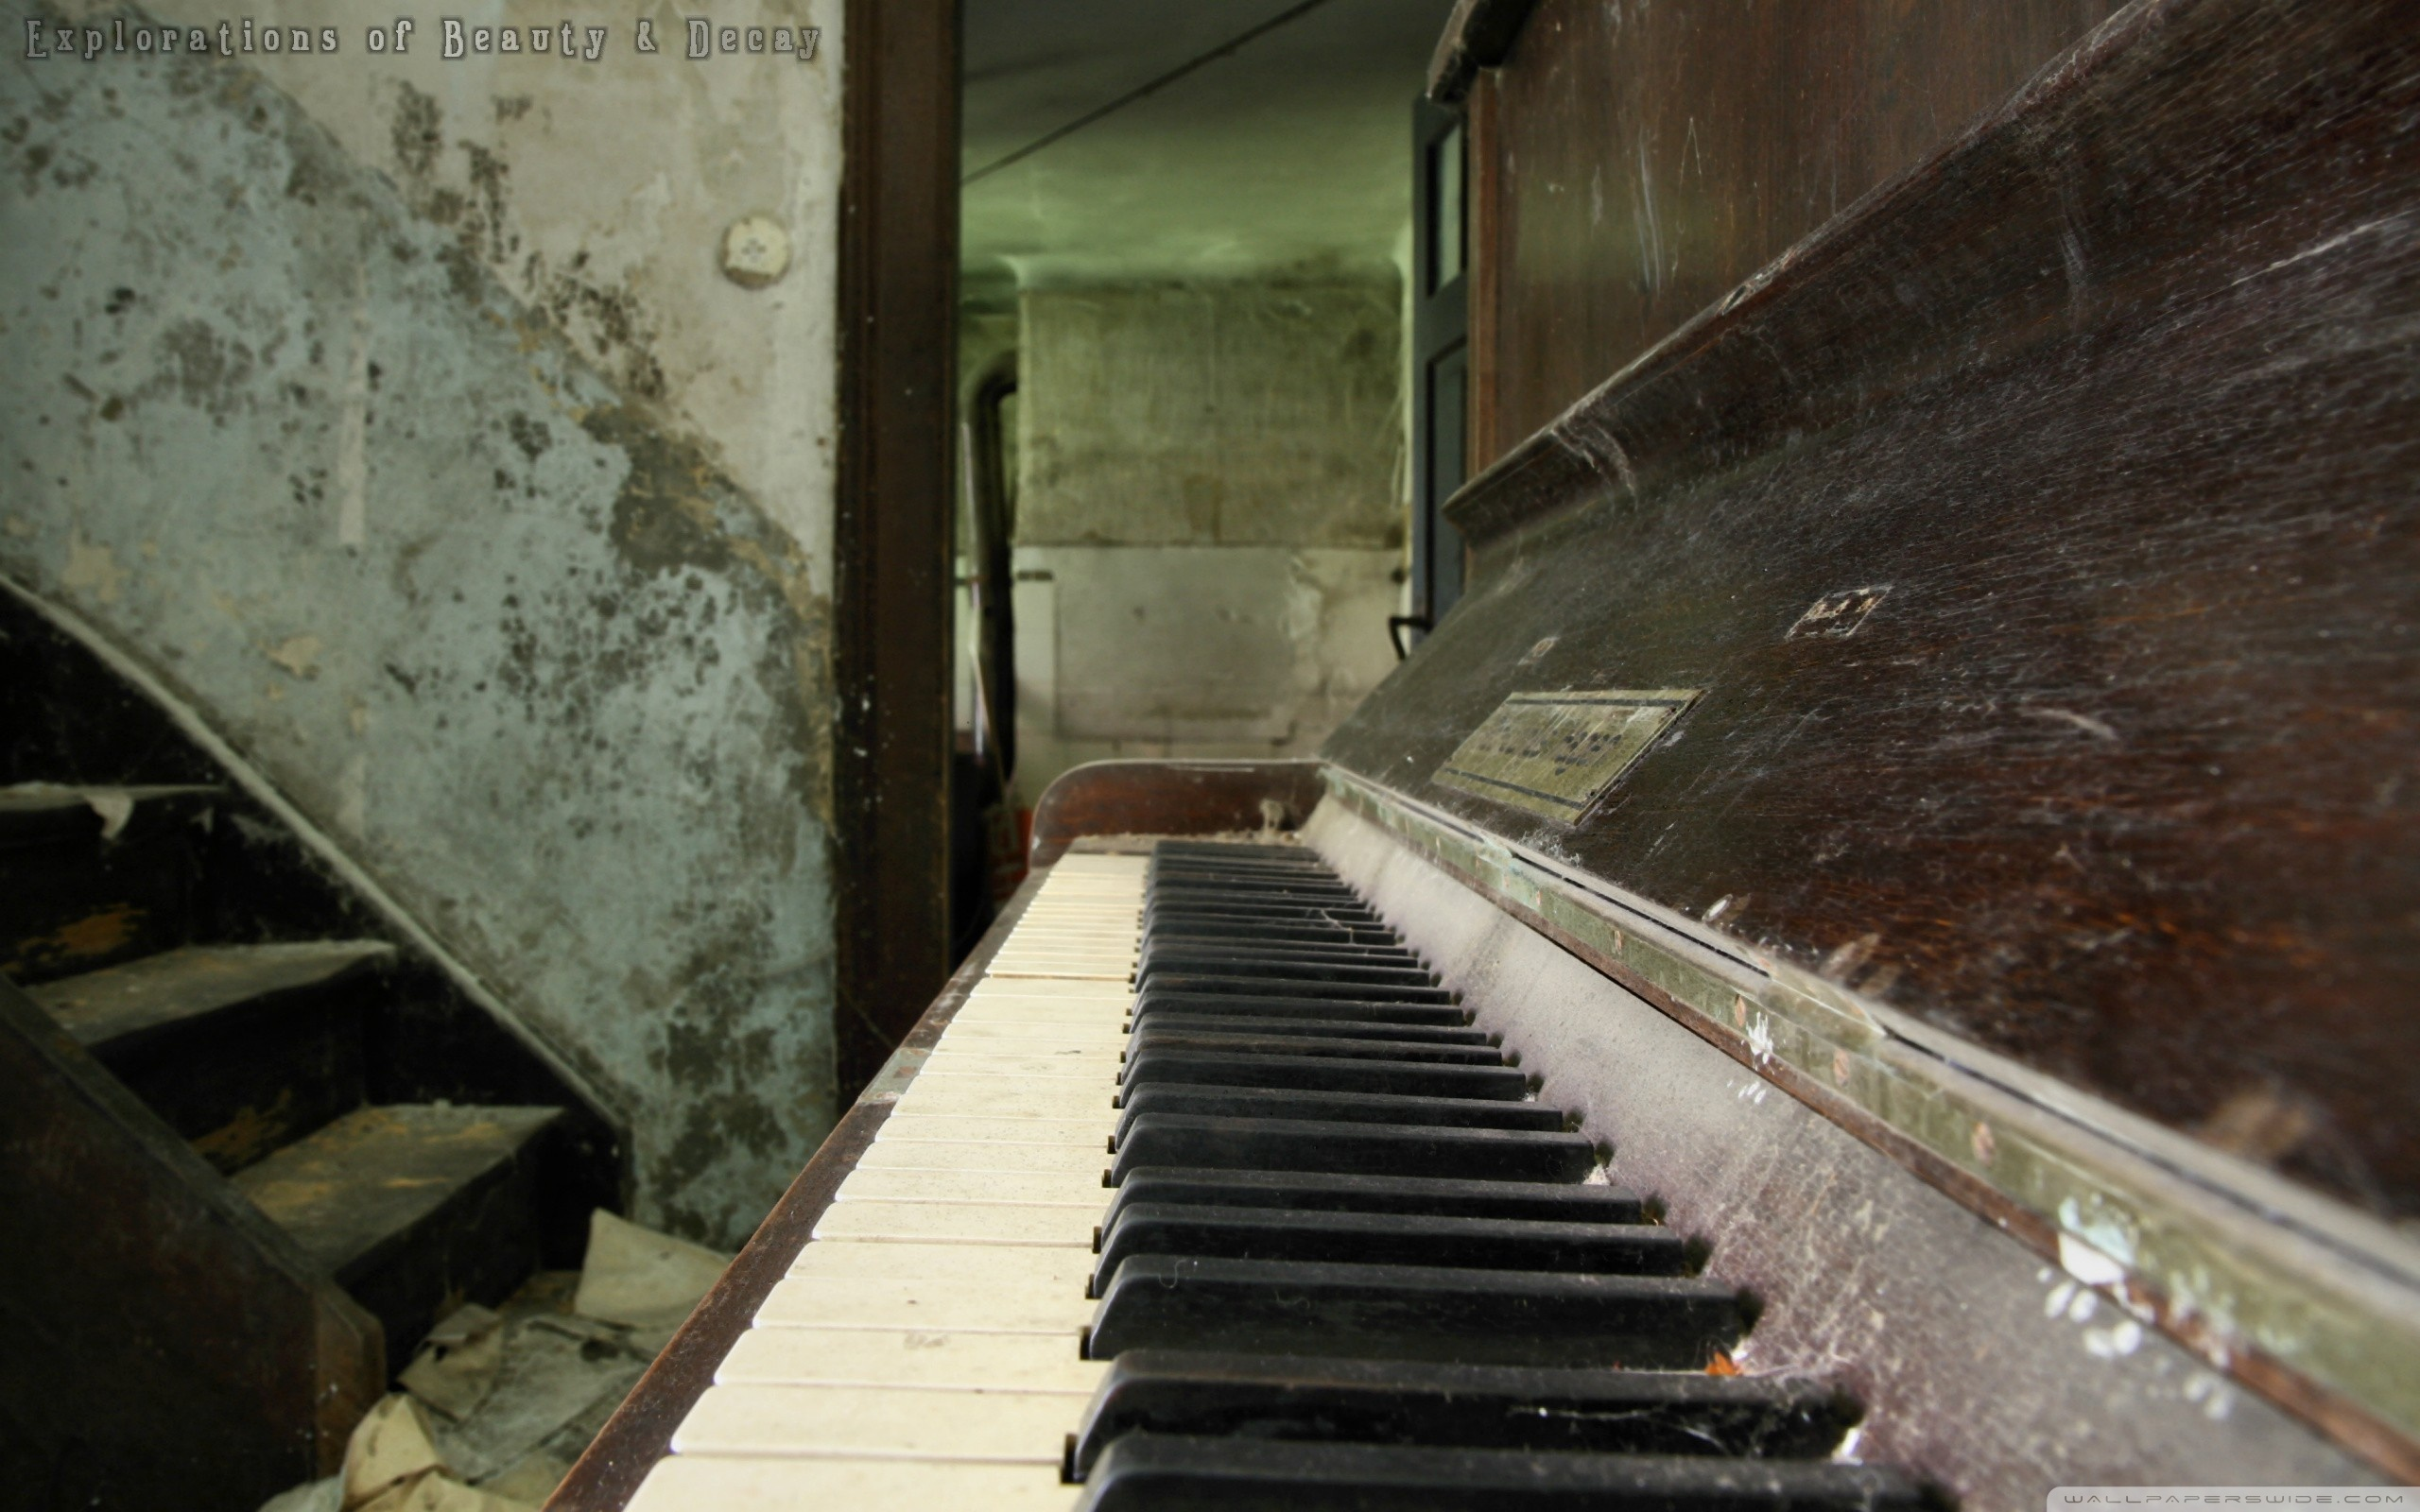 photo old piano - photo #14